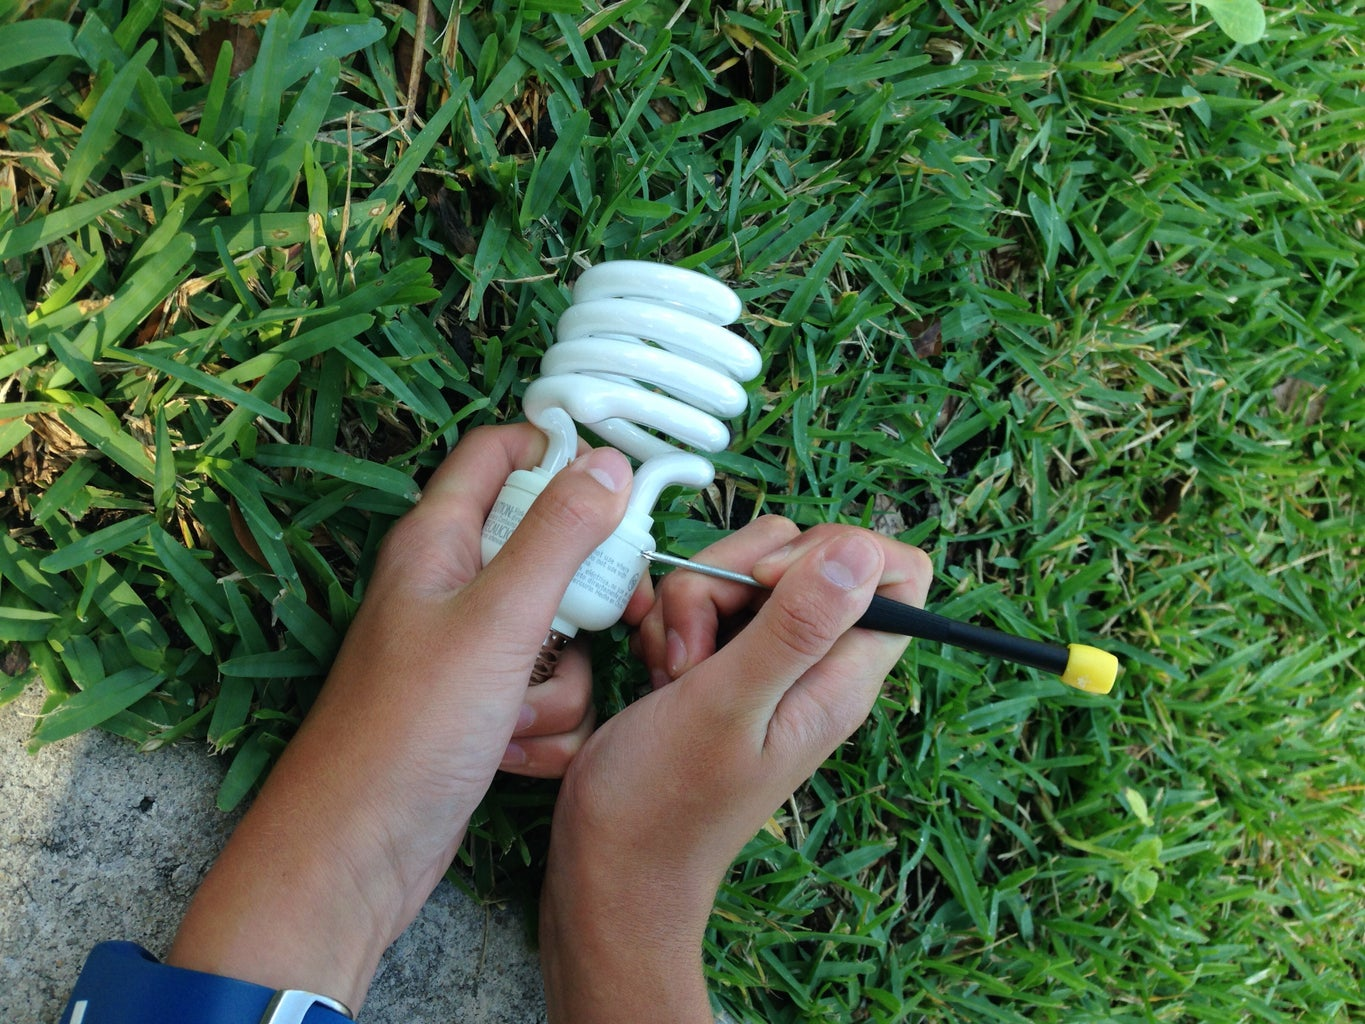 TAKING APART CFL BULB FOR PARTS